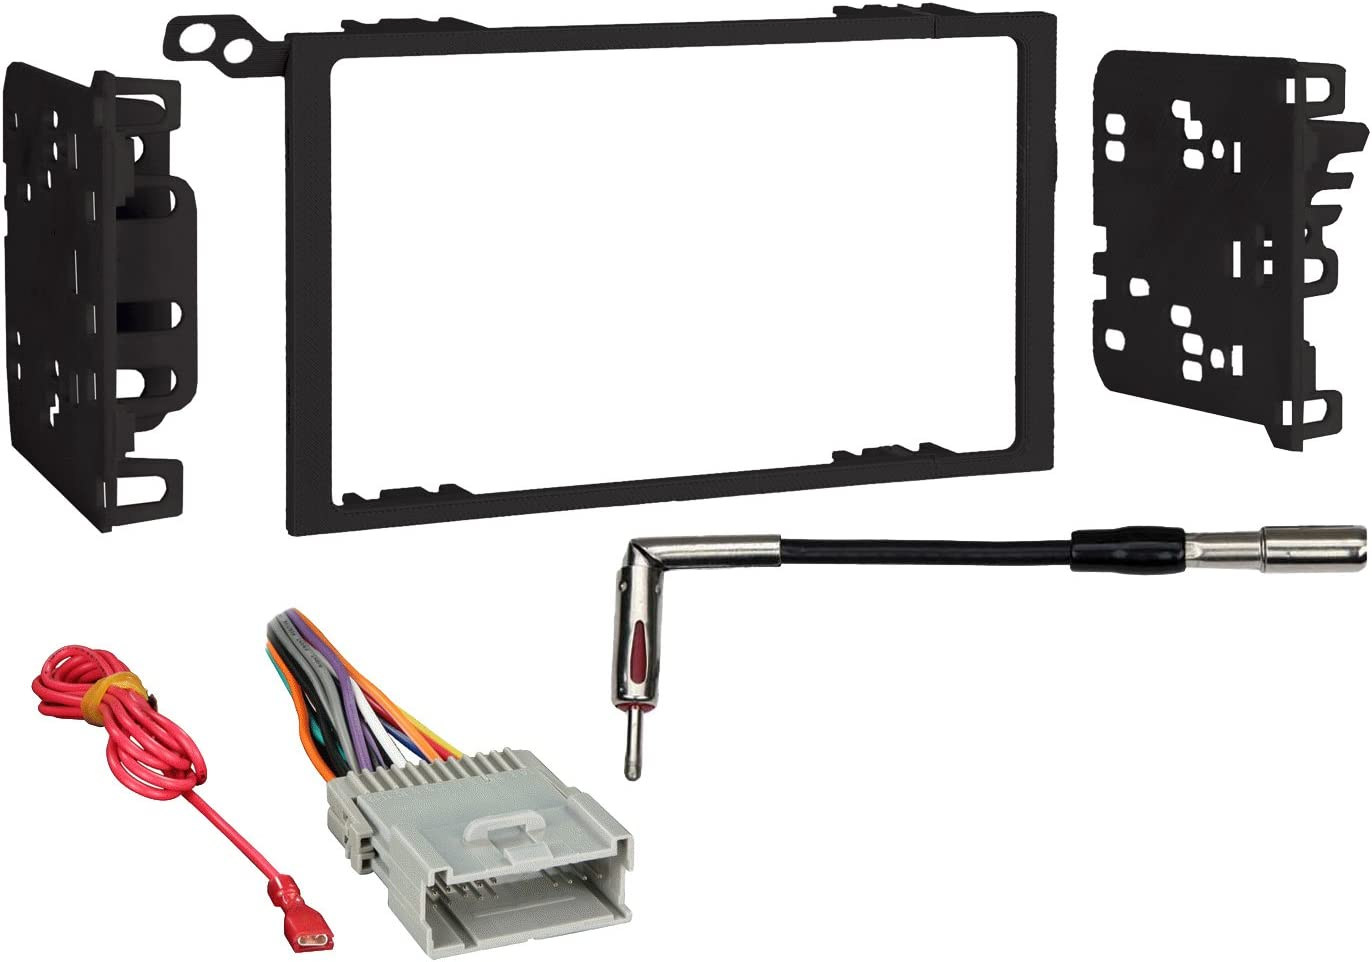 Metra 95-2009 2-DIN Dash Kit Harness Antenna Adapter for Select Chevy//GMC